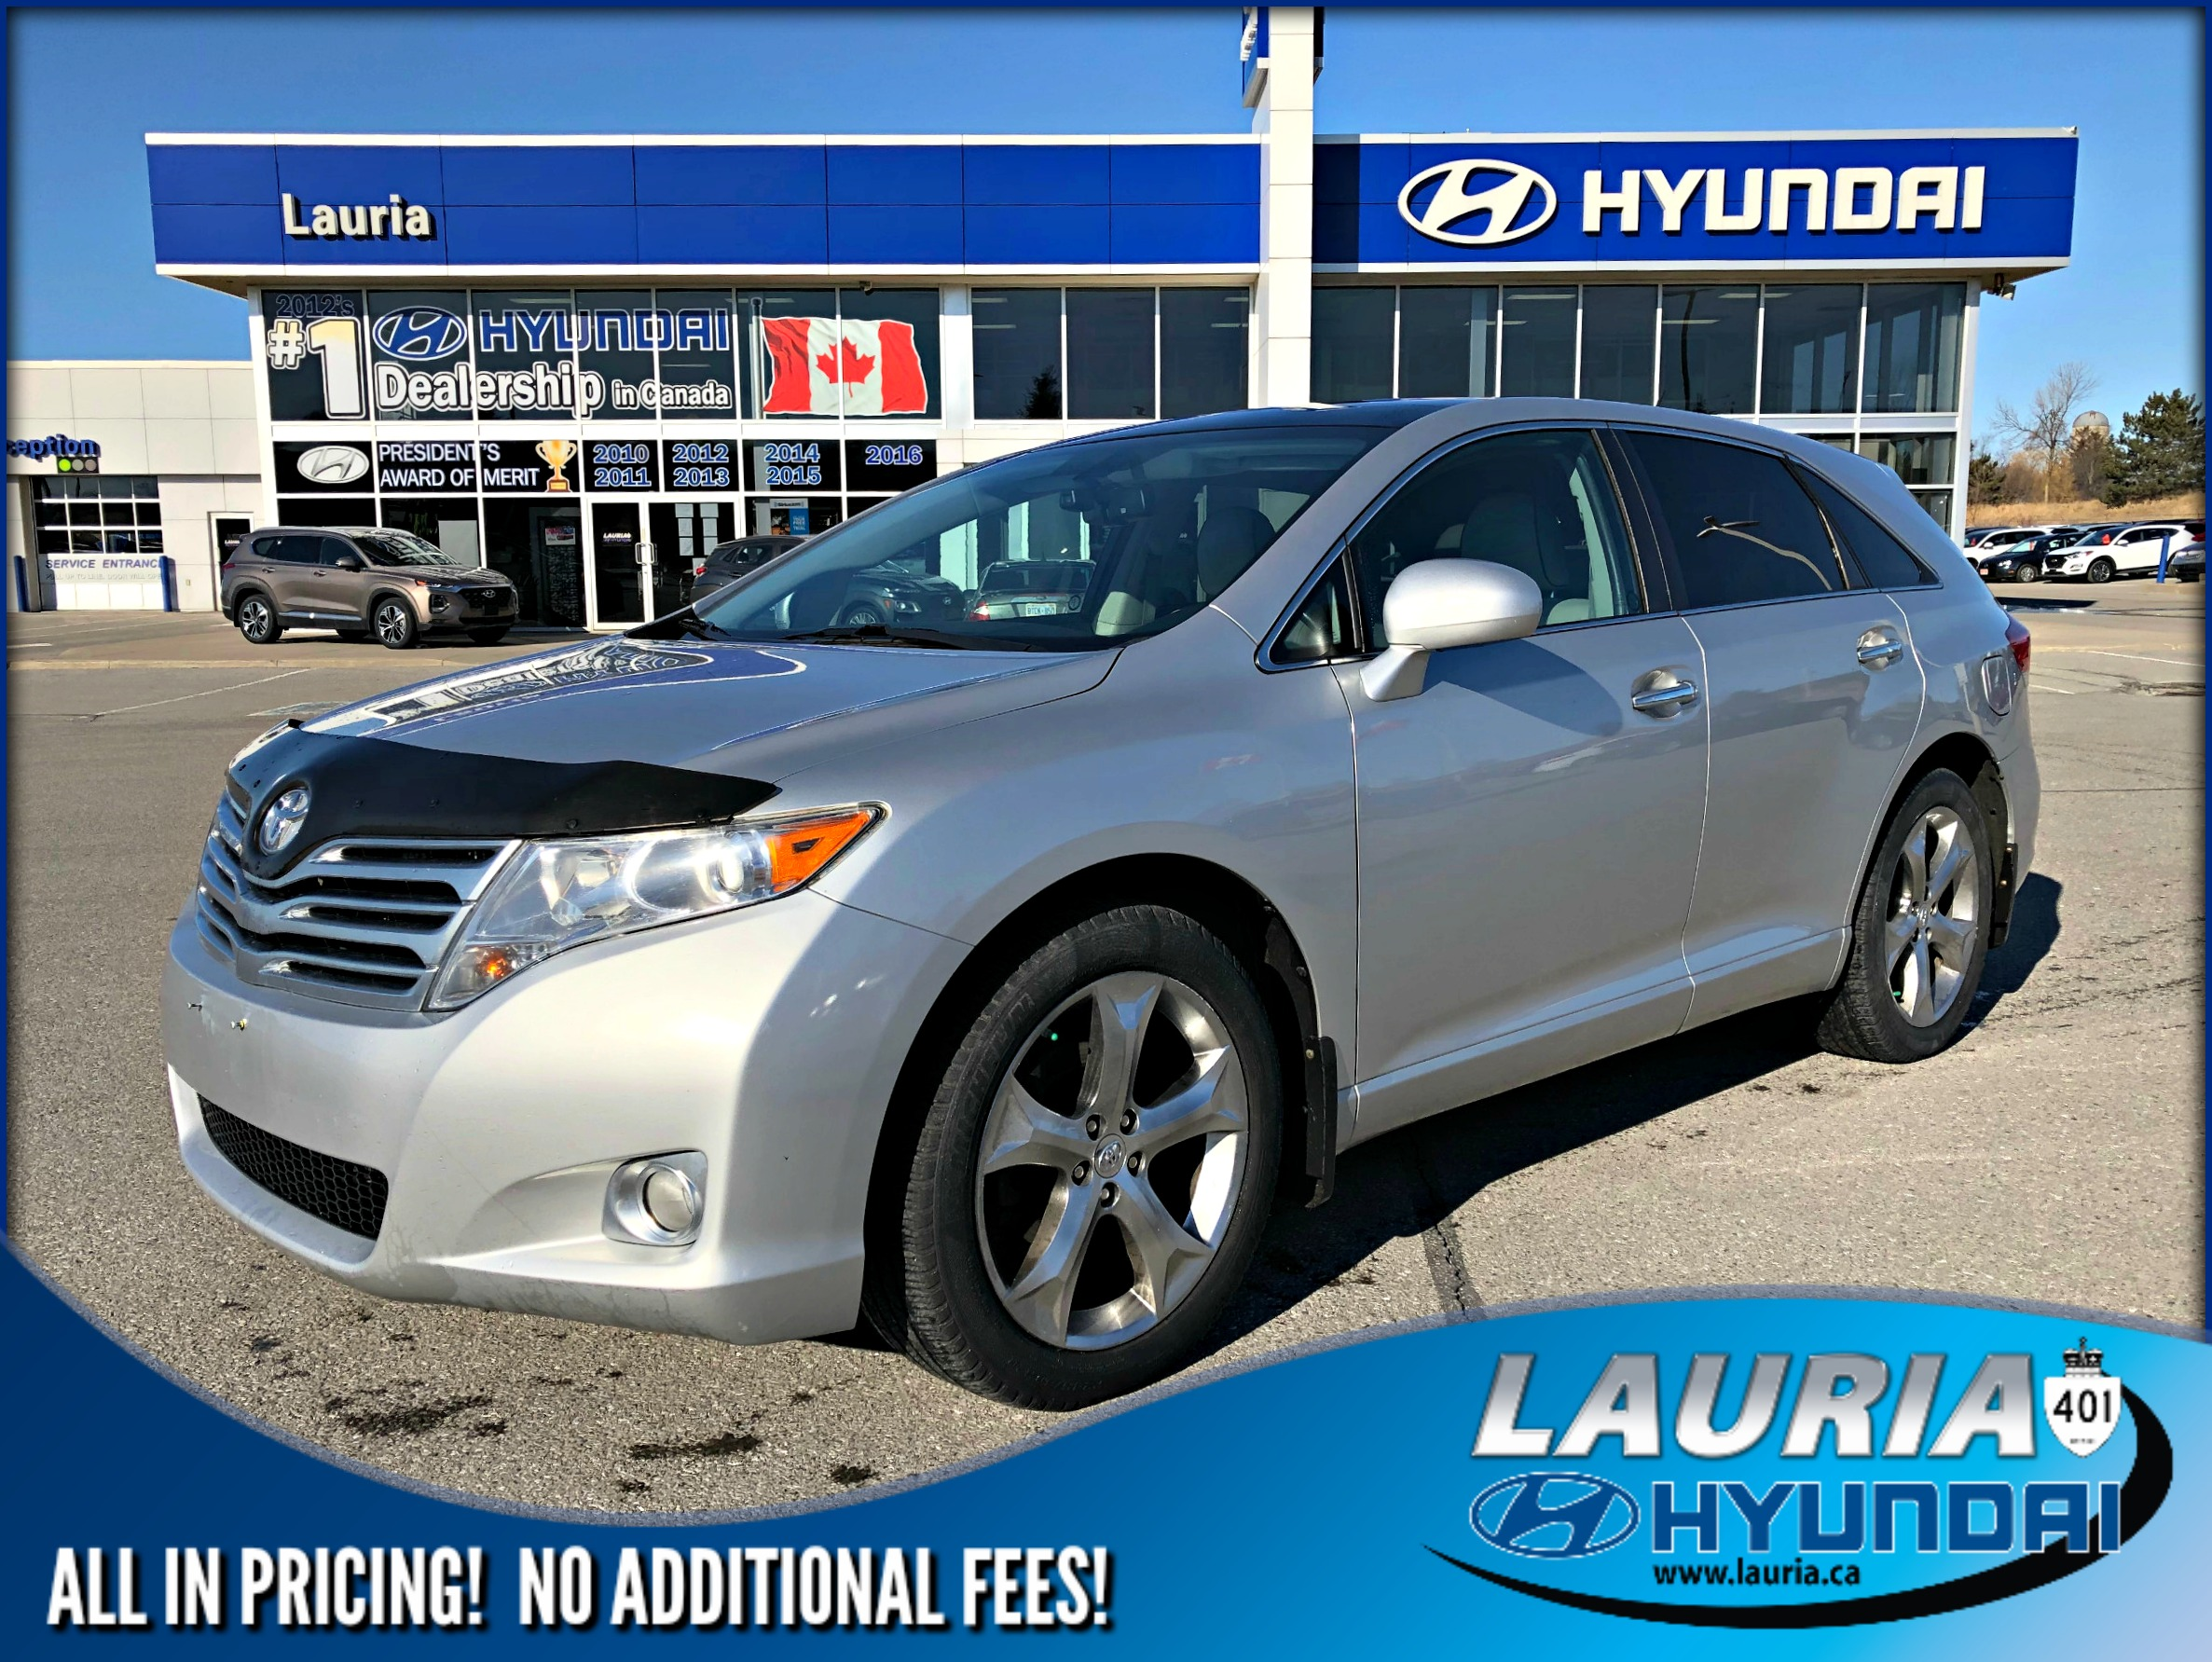 Pre-Owned 2011 Toyota Venza V6 AWD - Leather / Dual sunroof